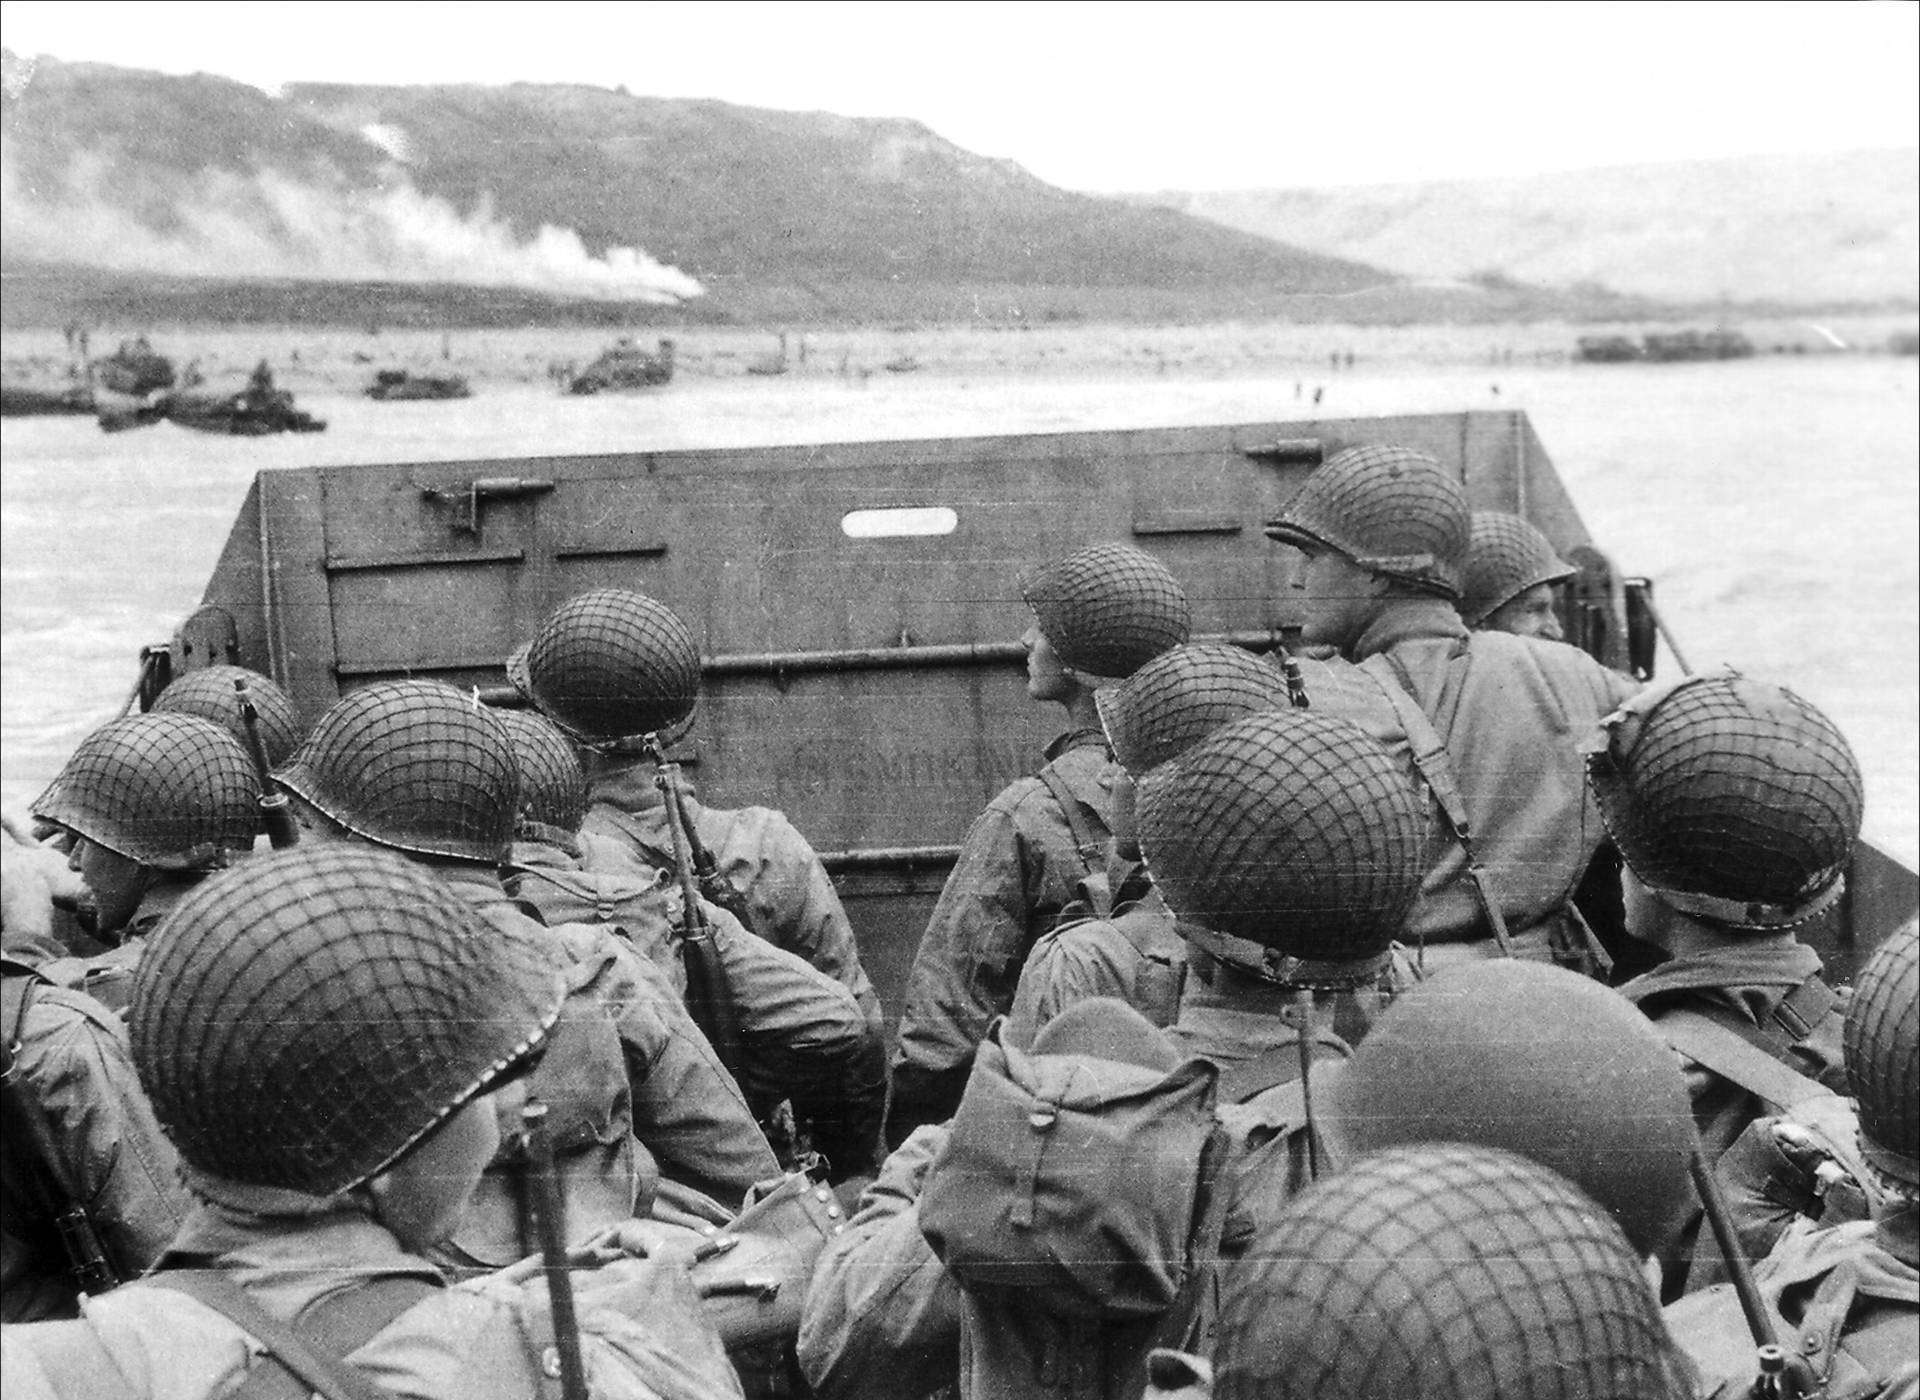 D-Day Invasion of Normandy gallery, photo of soldiers storming the beaches of Normandy